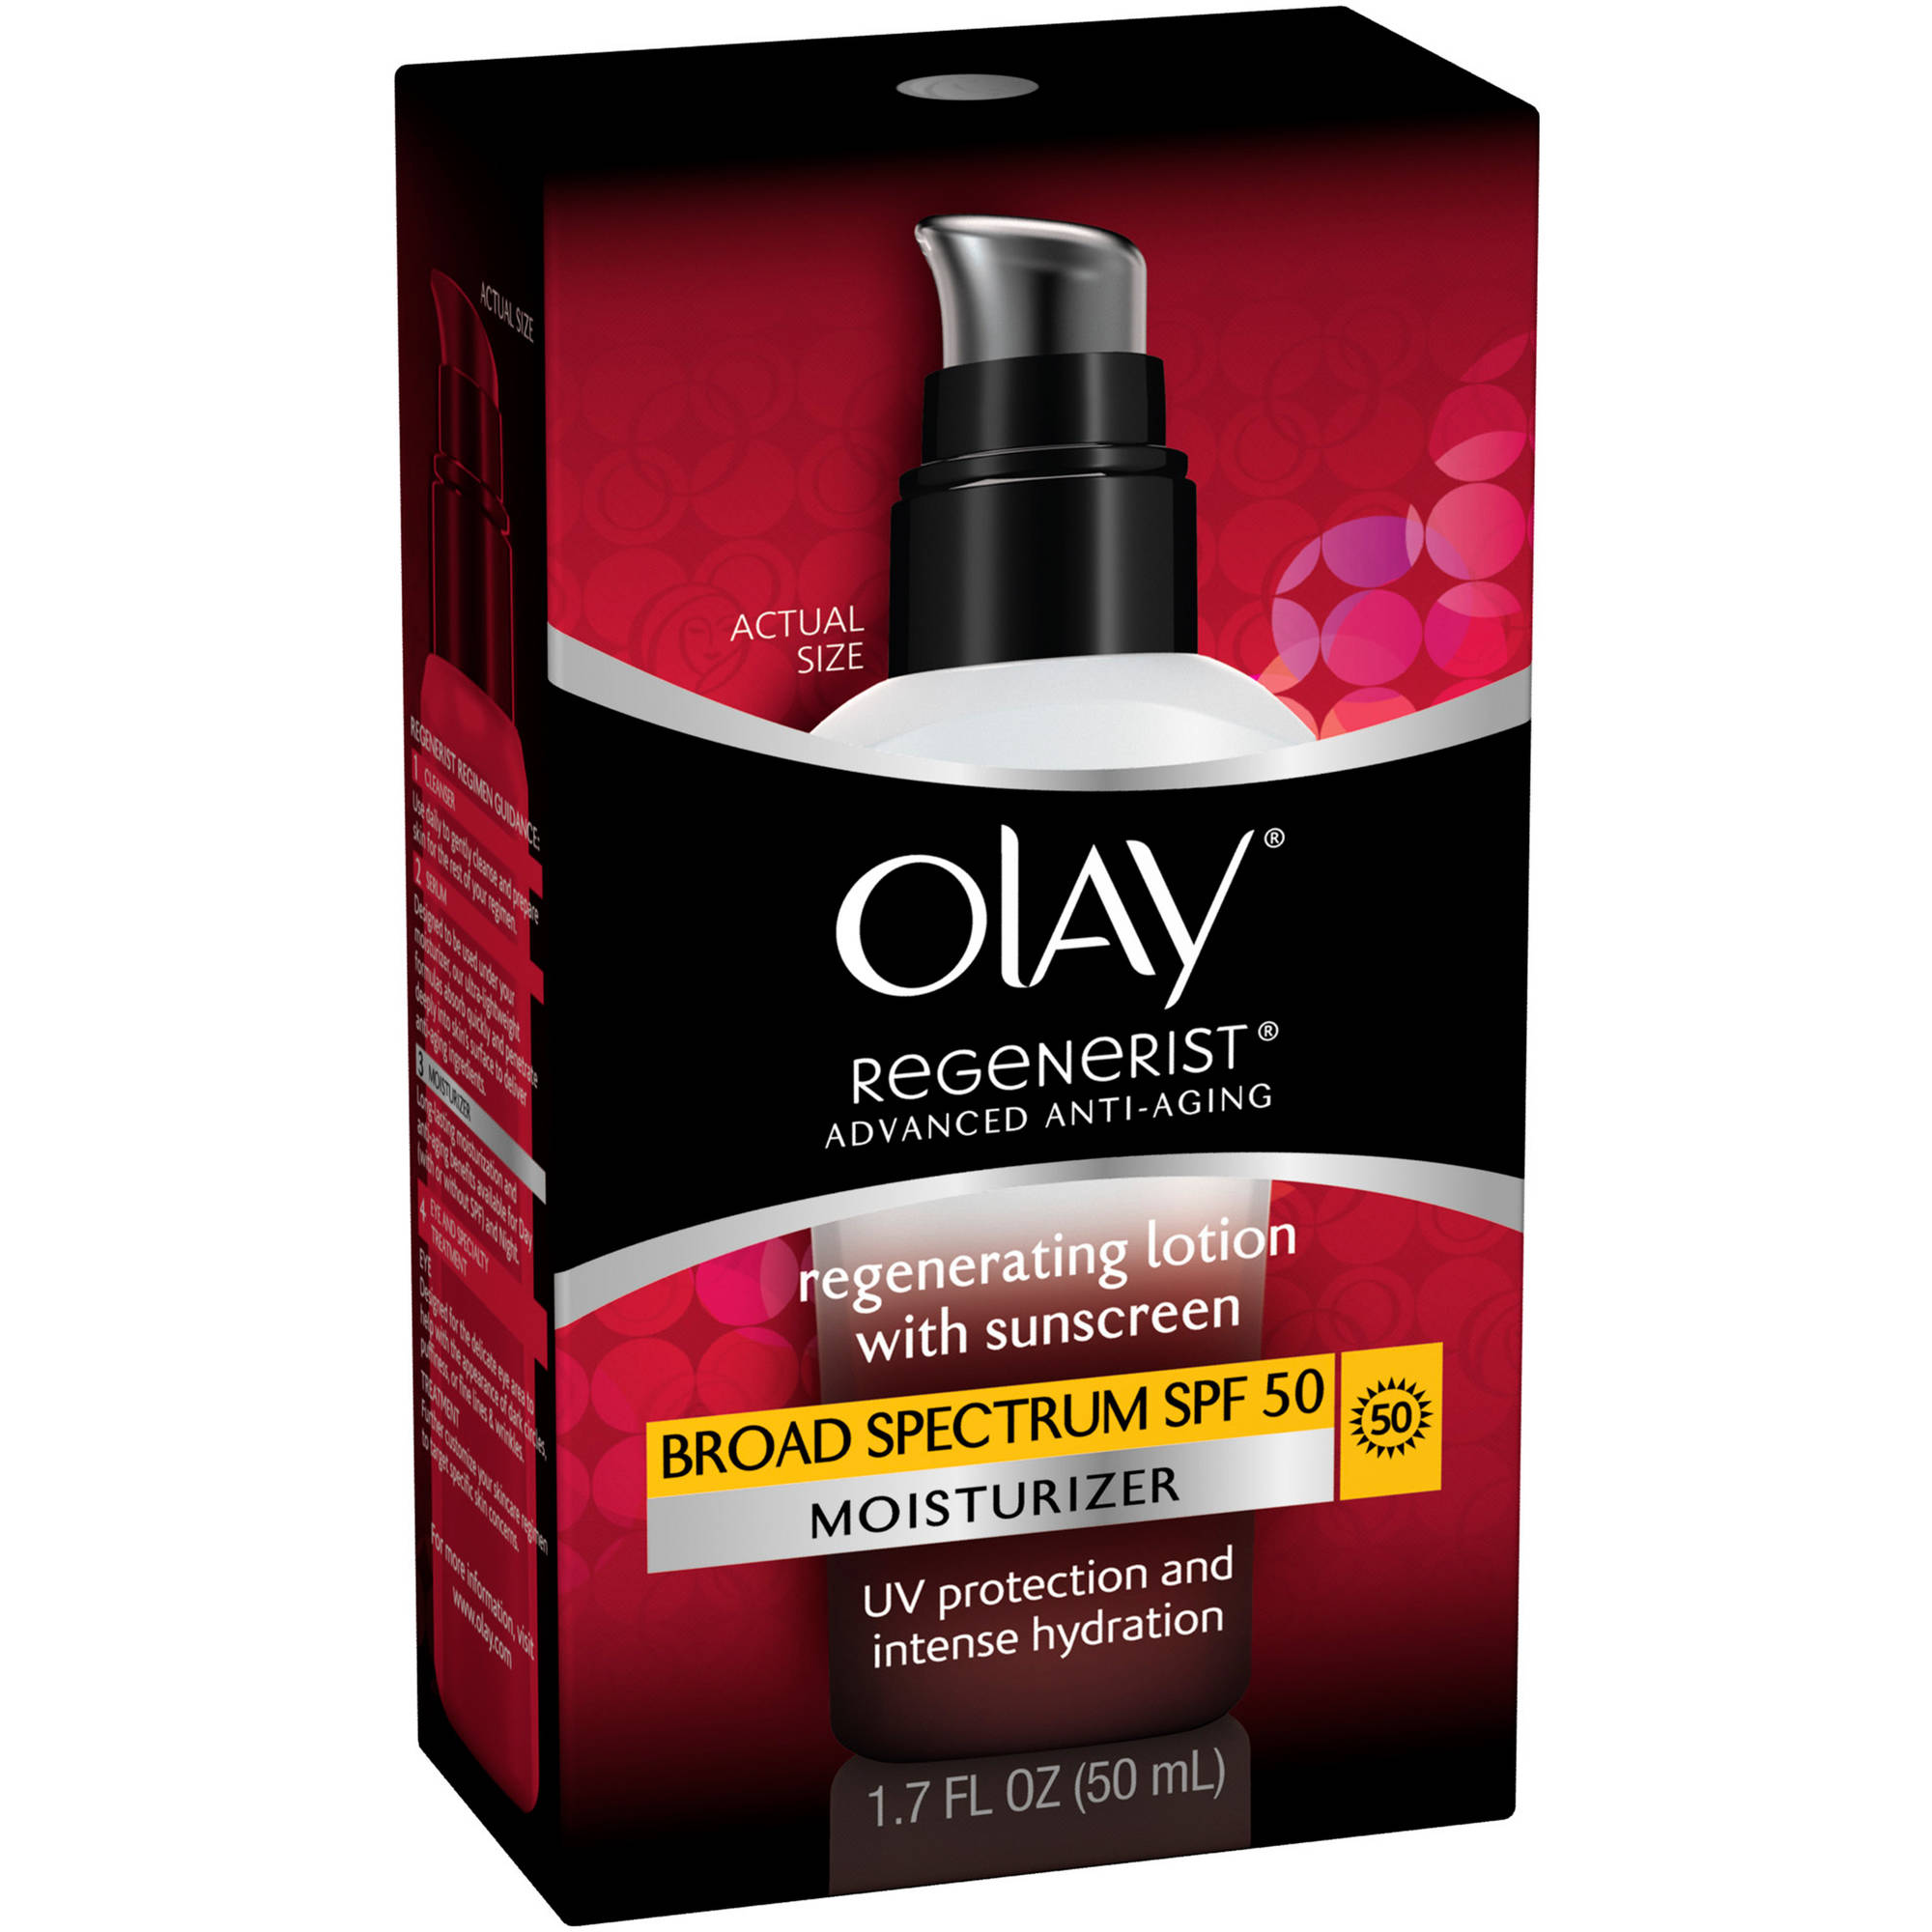 Olay Regenerist UV Defense Regenerating Facial Moisturizer Lotion, 1.7 oz